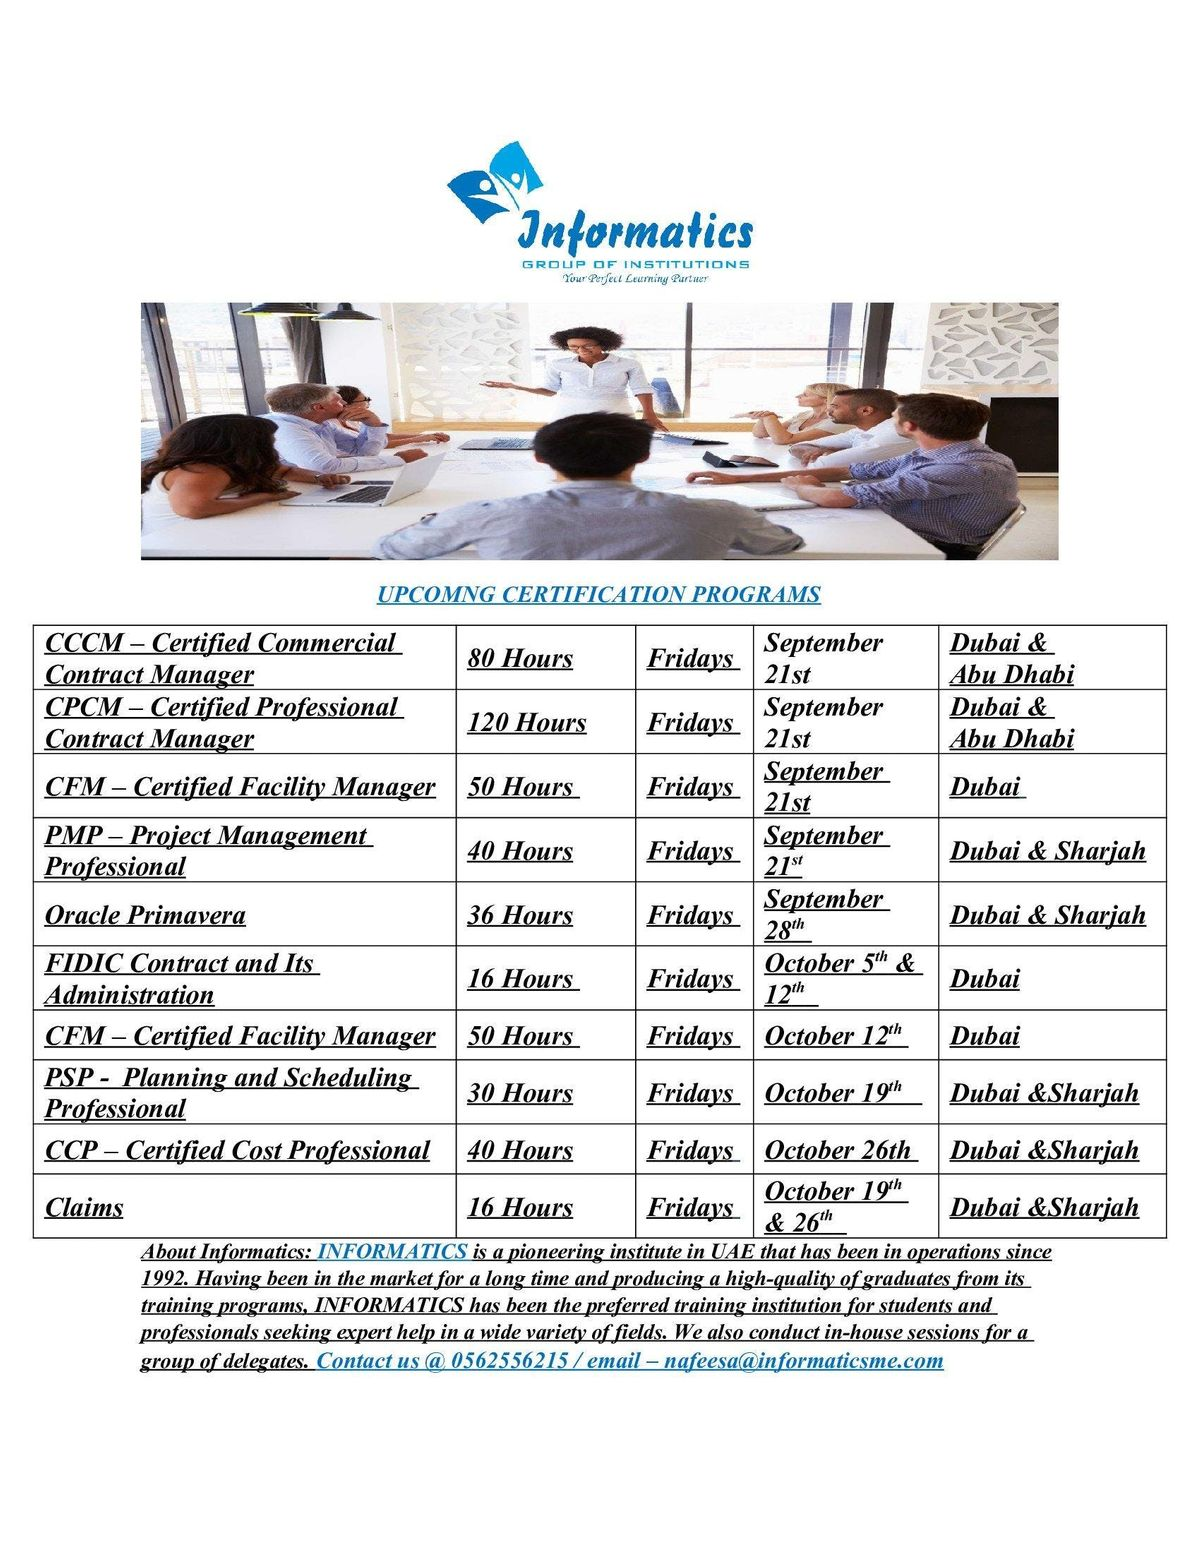 Upcoming Certification Programs Informatics Group Of Institutions